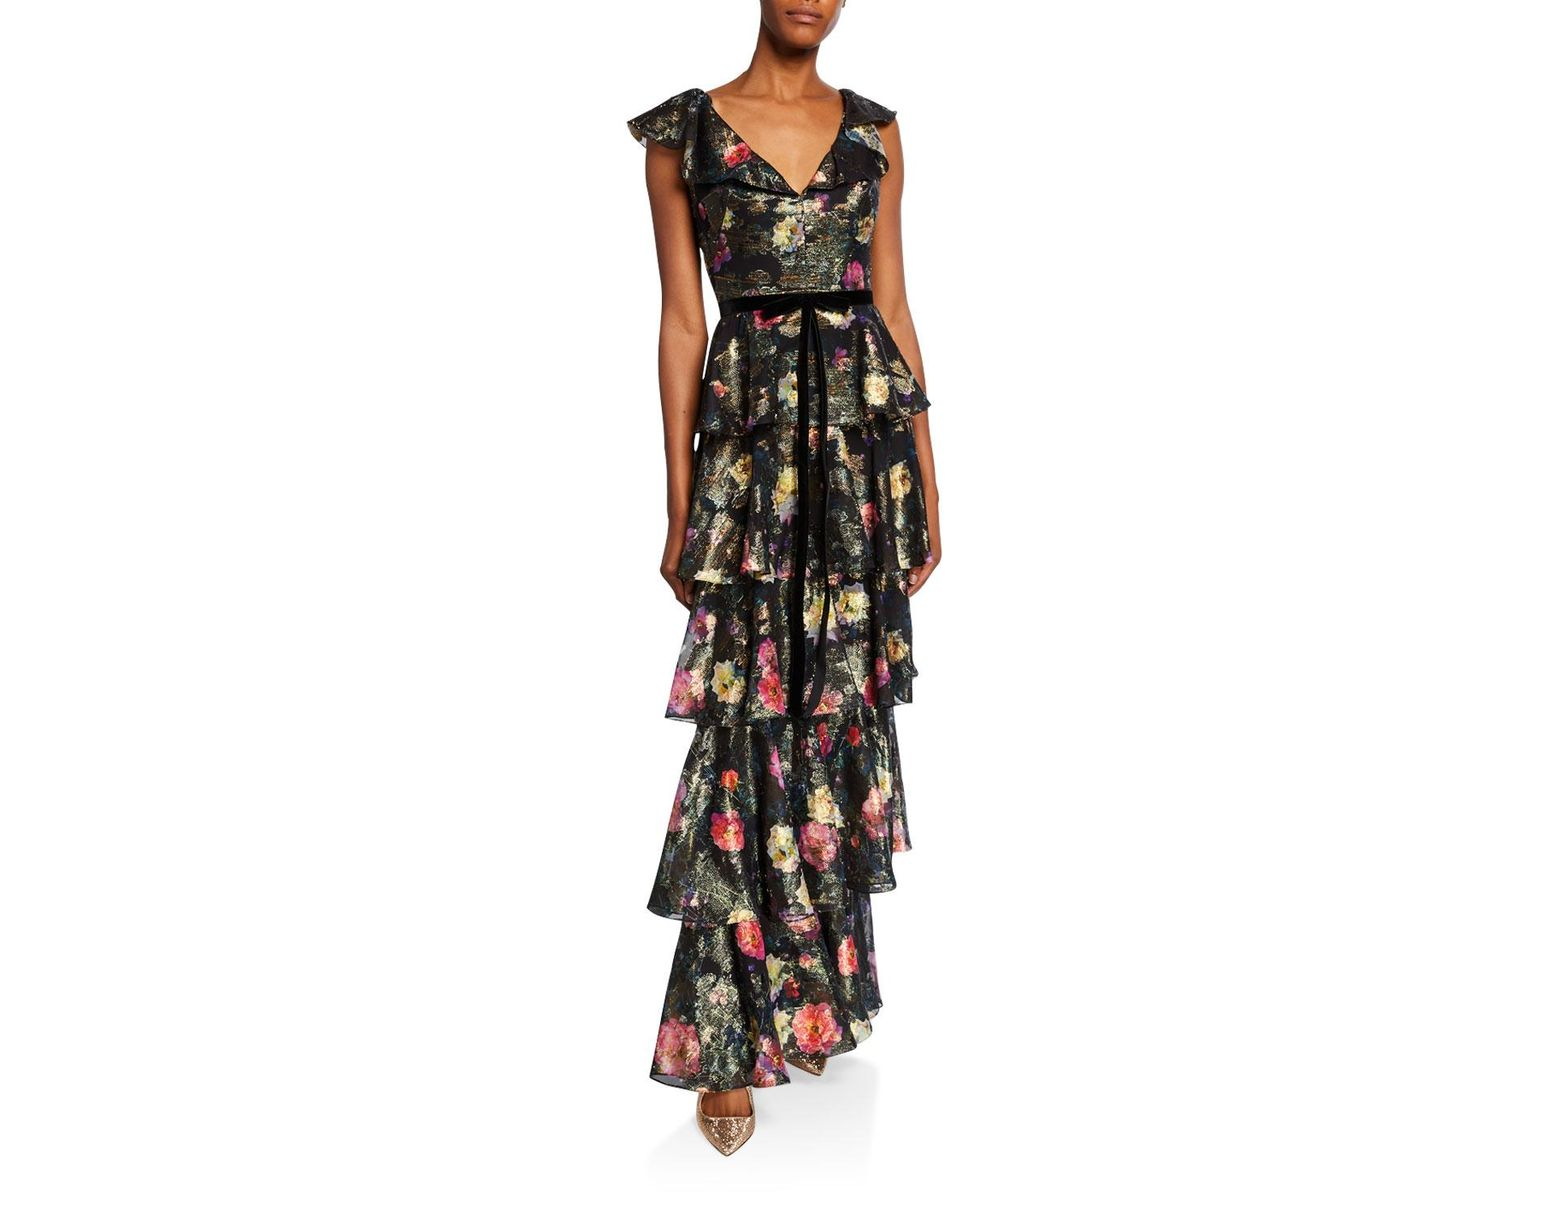 a2cda280 Marchesa notte Metallic Printed V-neck Sleeveless Tiered Fil Coupe Ruffle  Gown in Black - Lyst